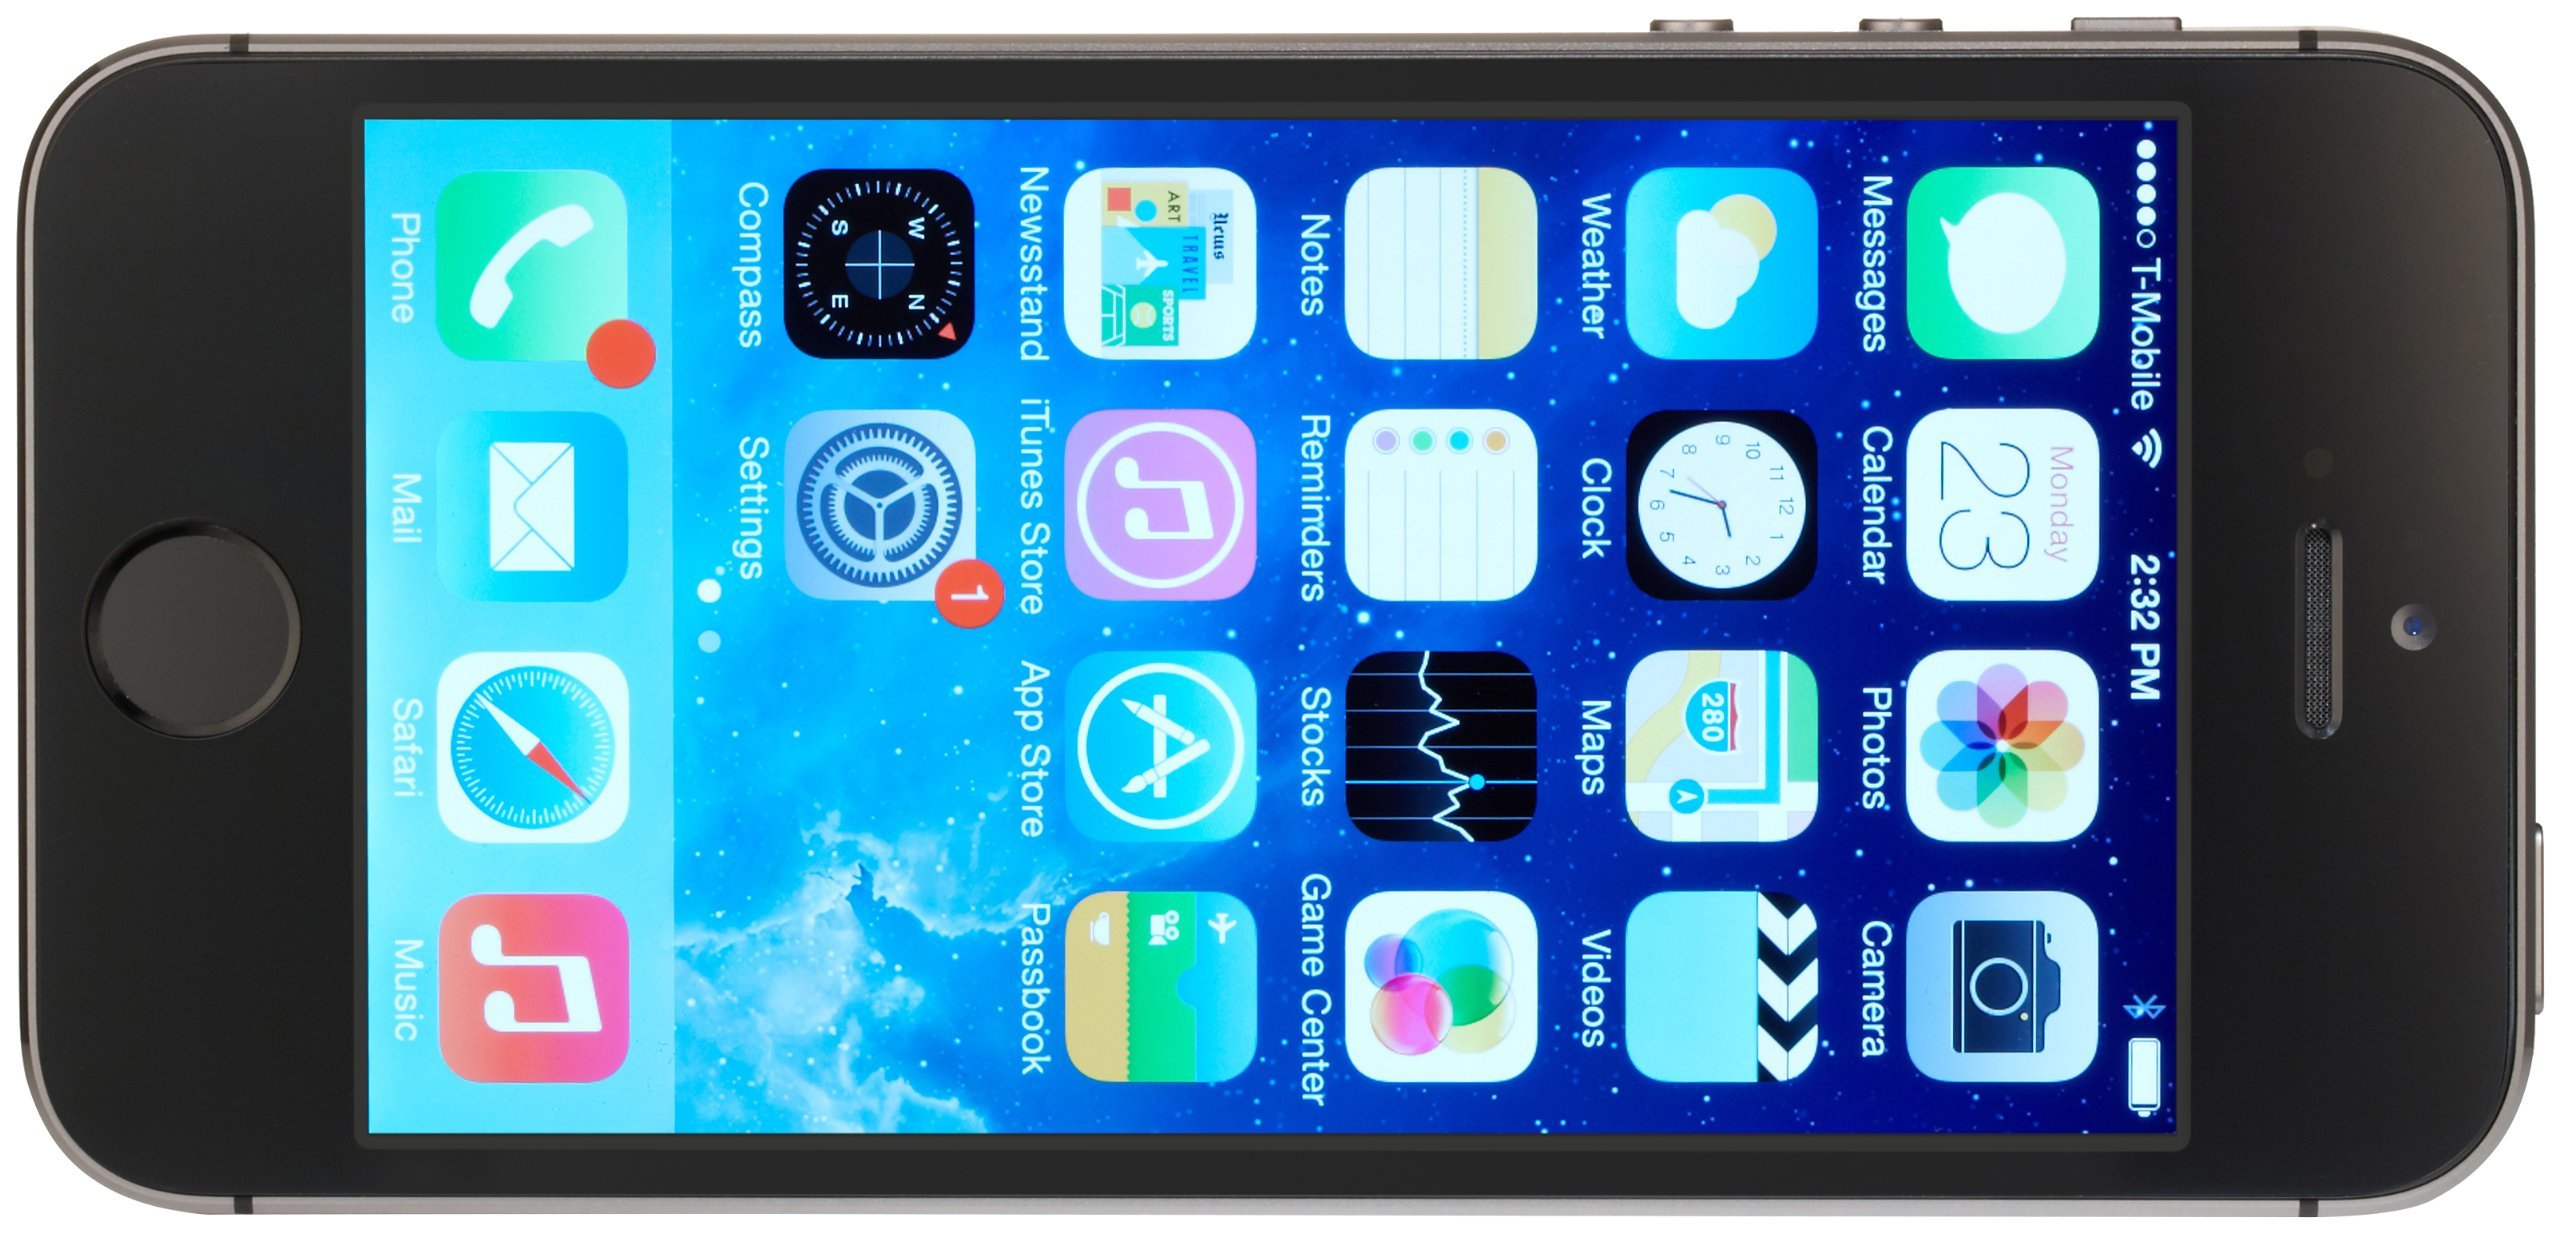 Apple Iphone 5s, 16GB - Unlocked (Space Gray) by Apple (Image #6)